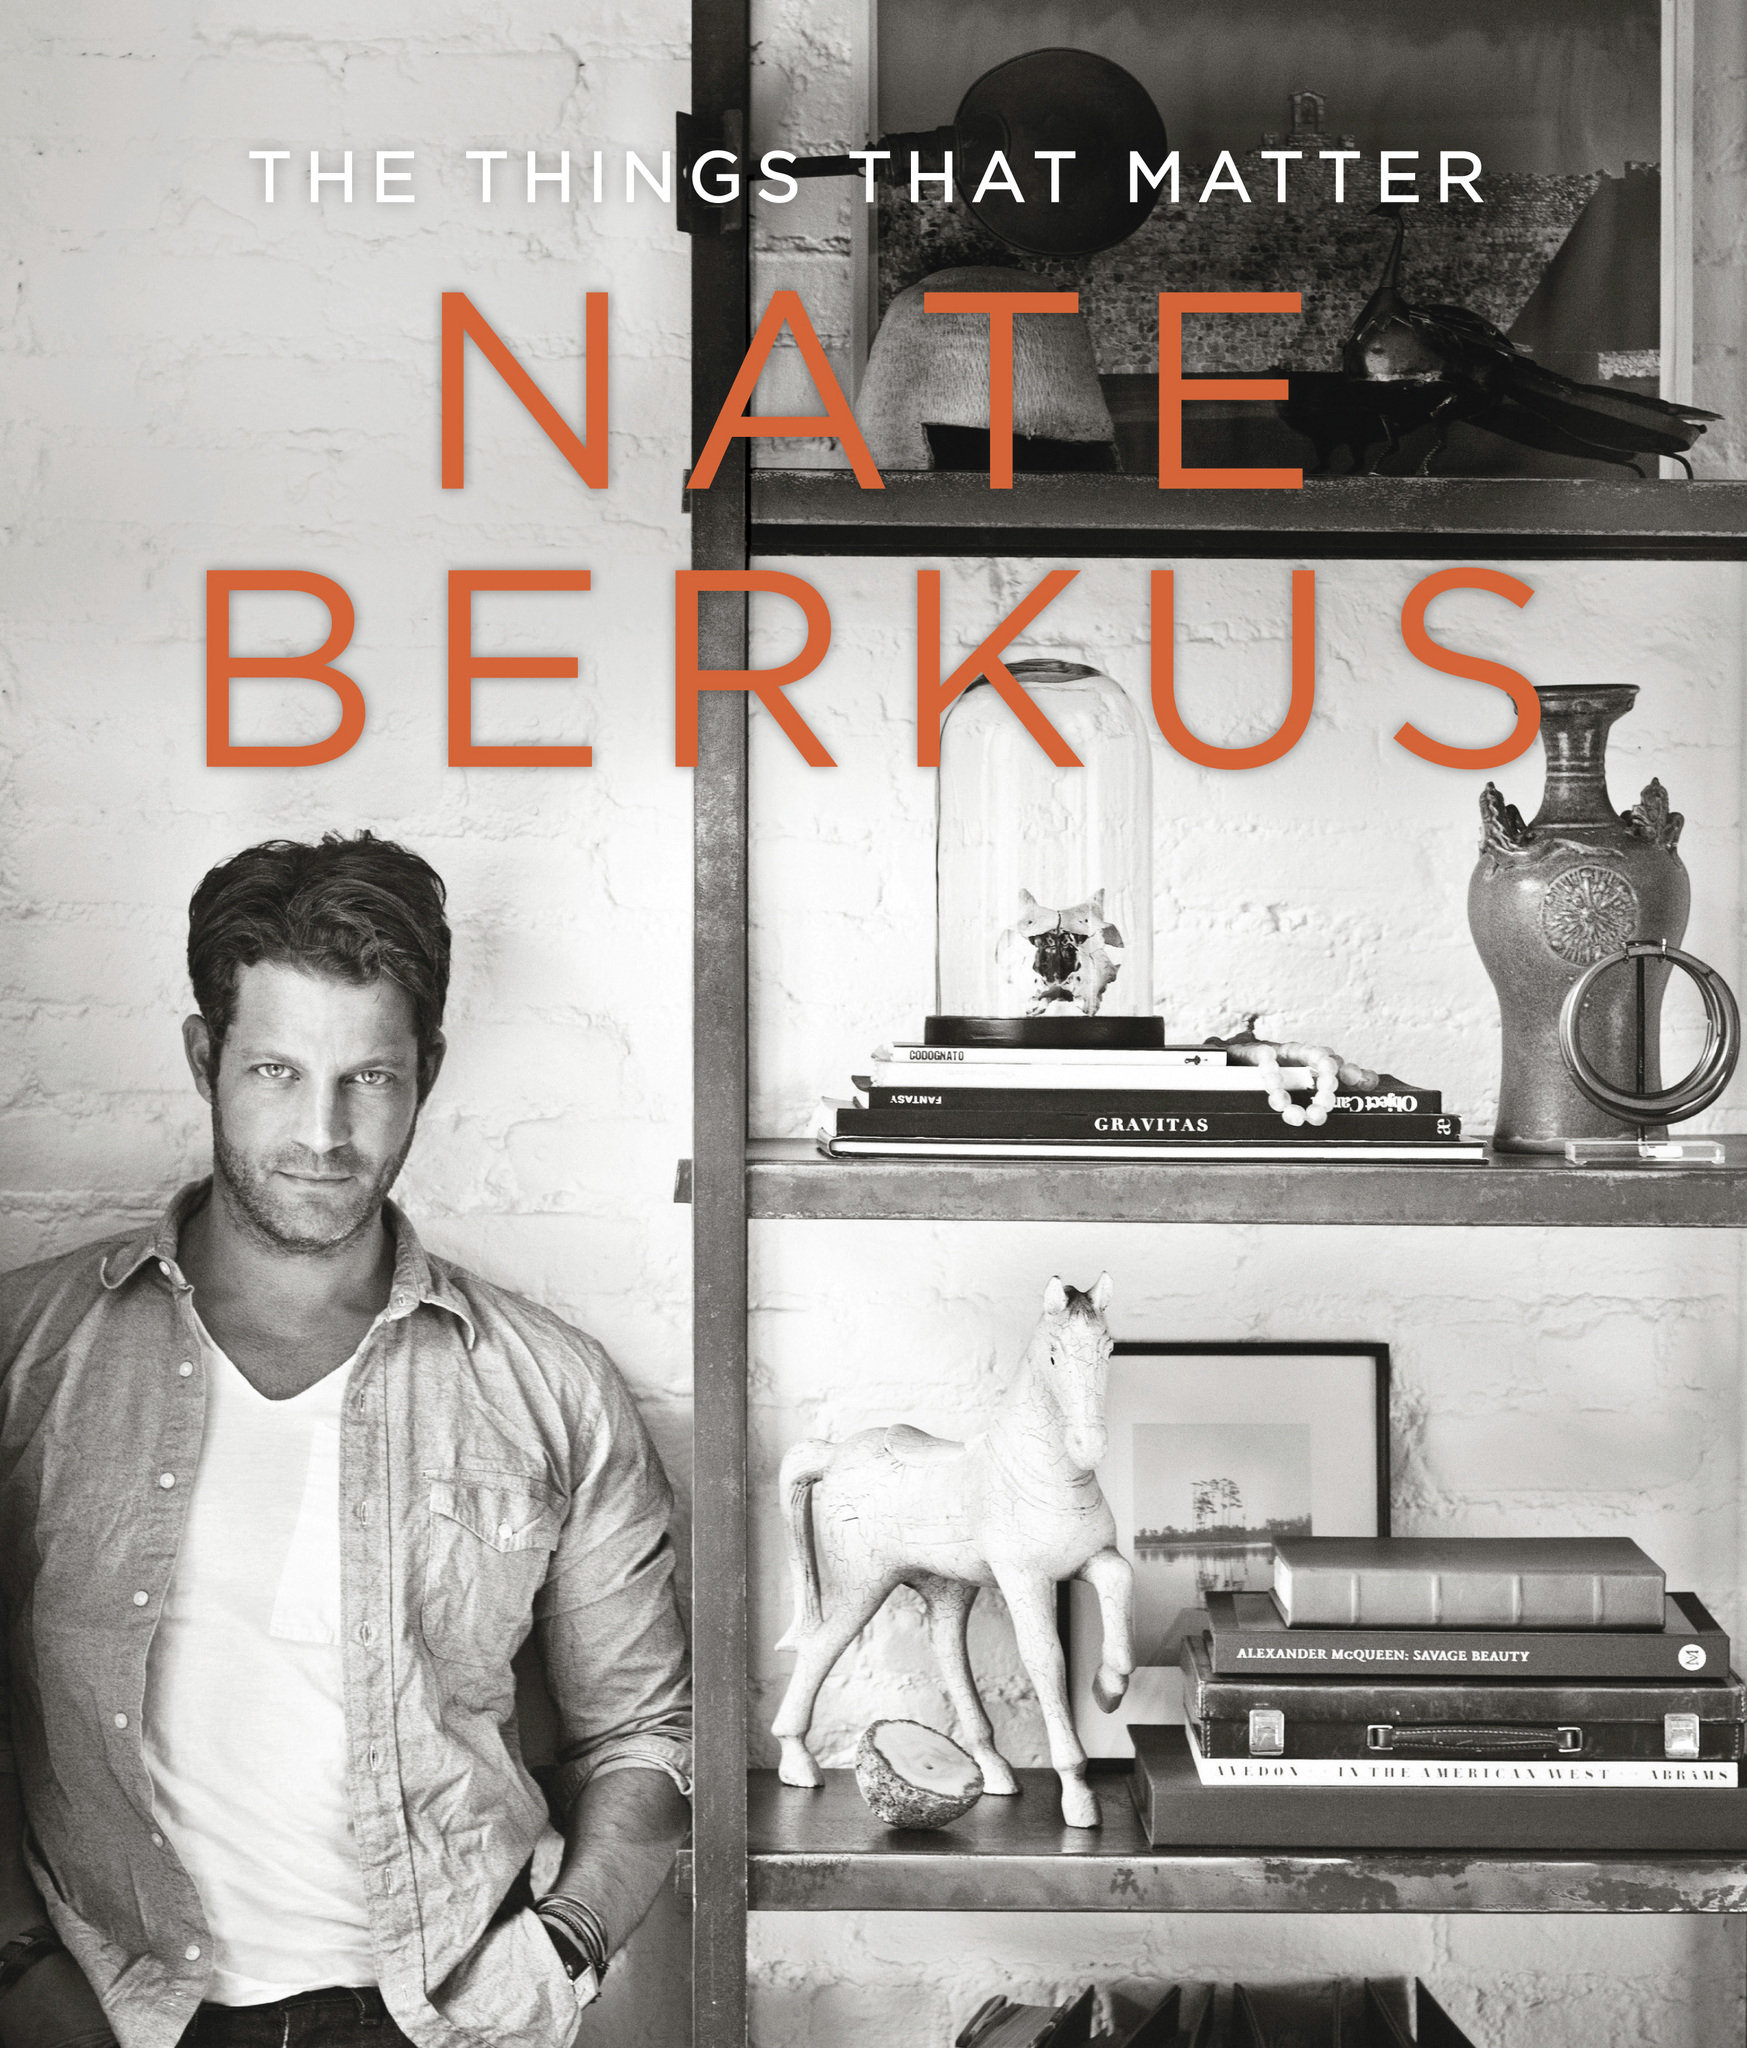 Nate Berkus - The Things That Matter - Best Interior Design Books - Cotton & Flax